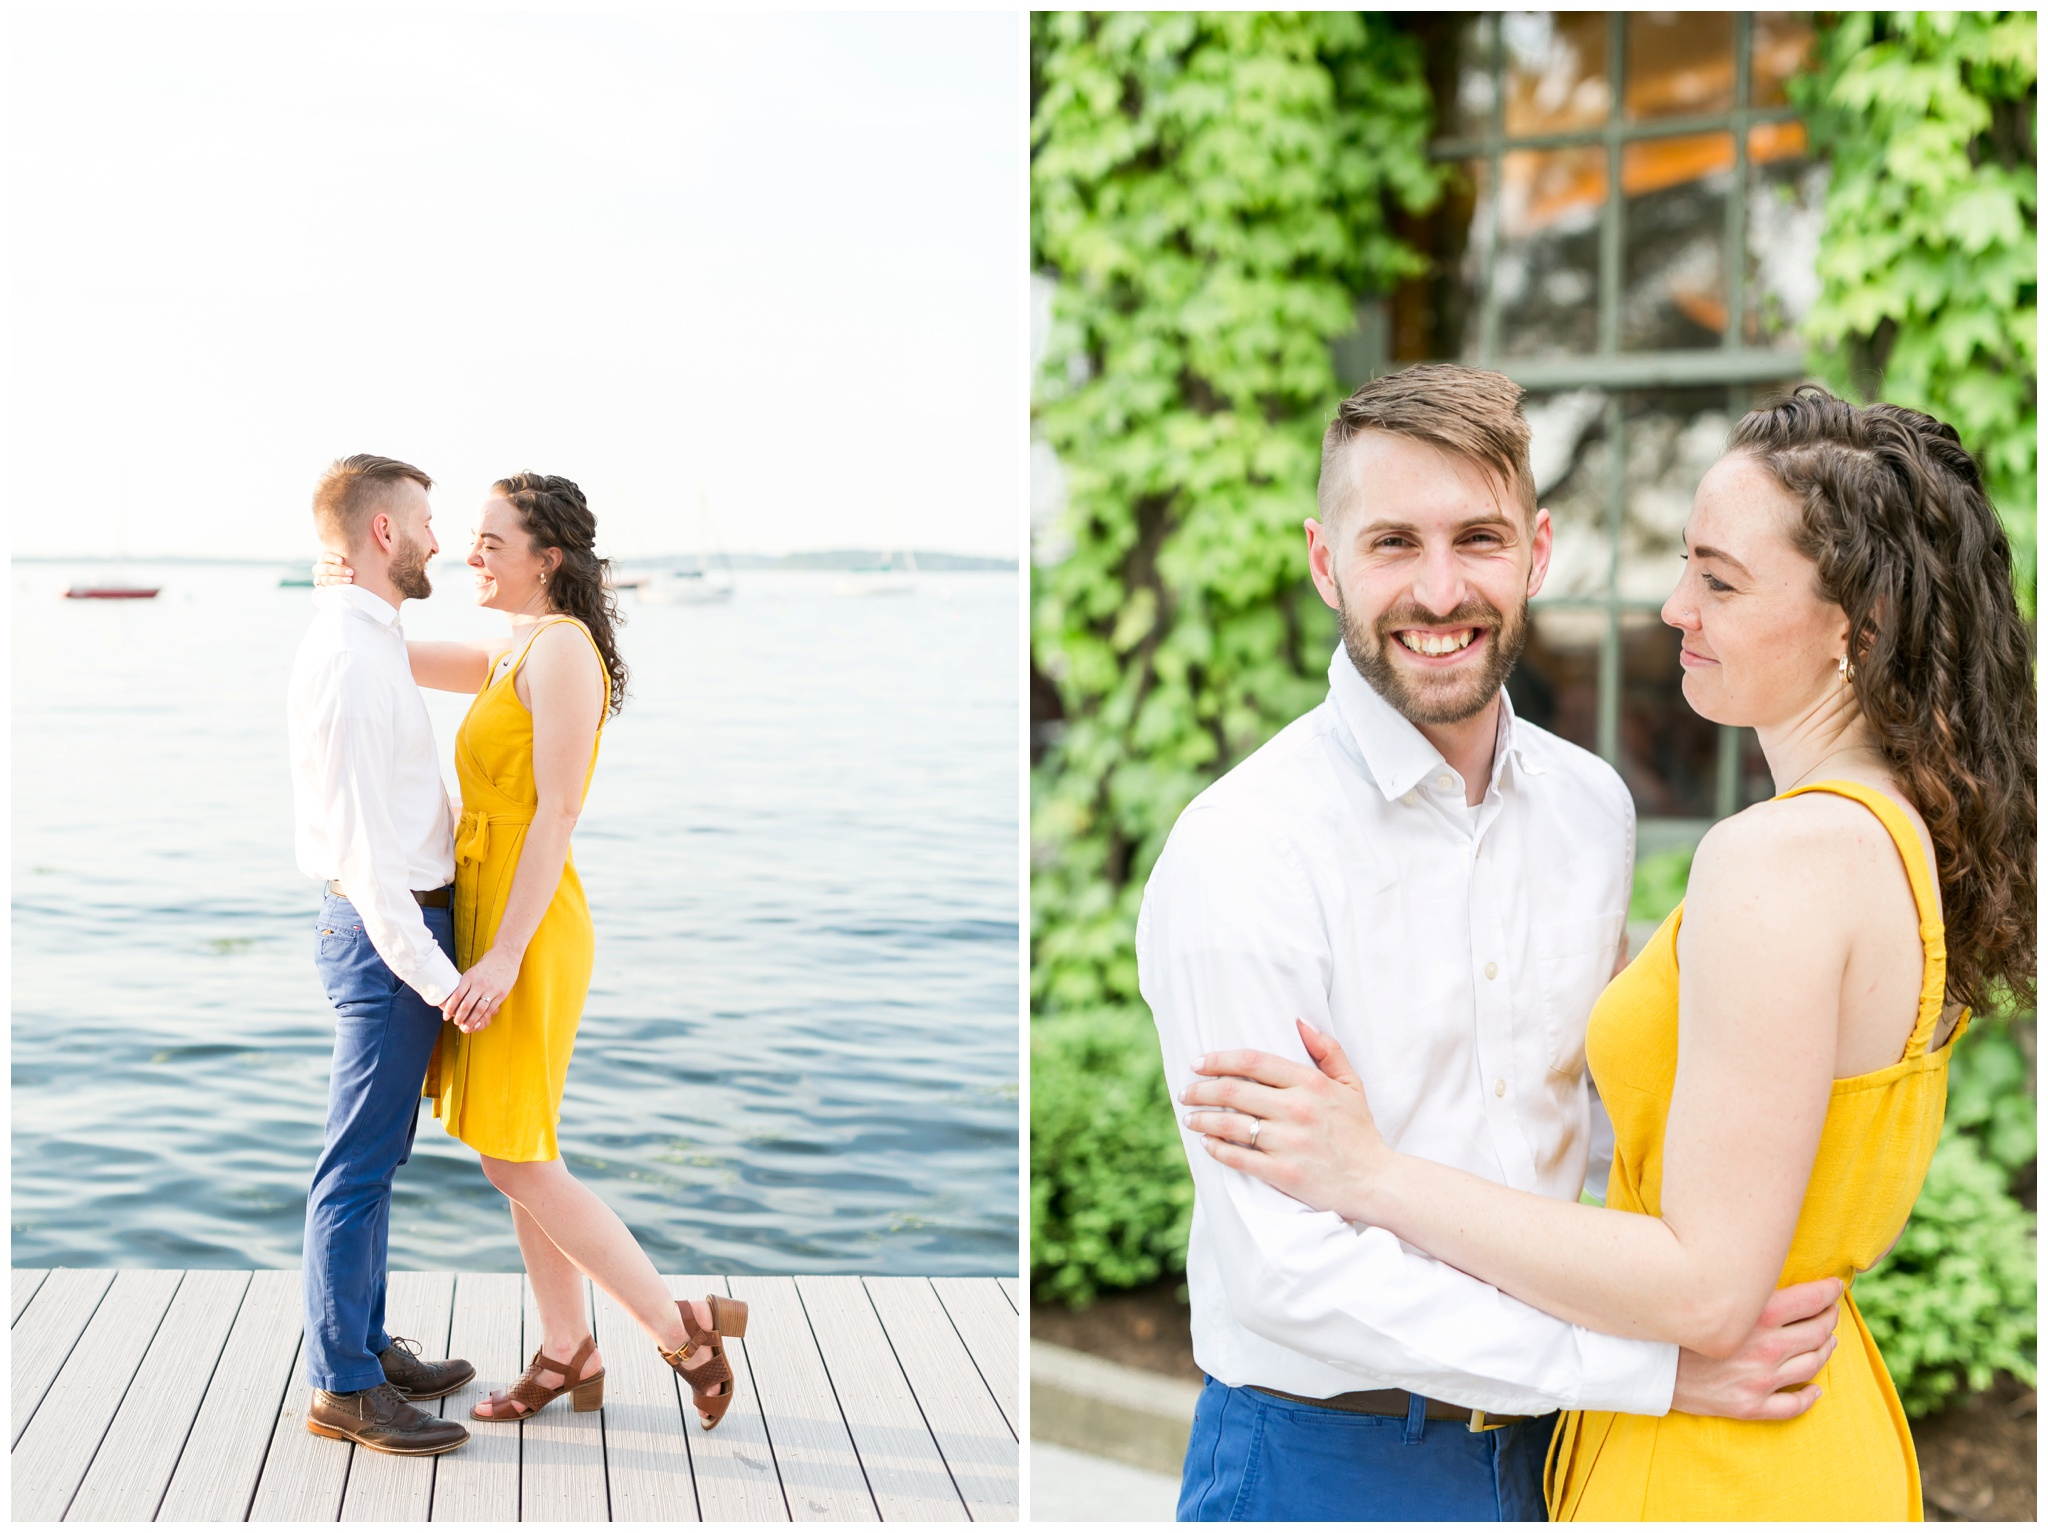 memorial_union_engagement_session_madison_wisconsin_photographers_3814.jpg